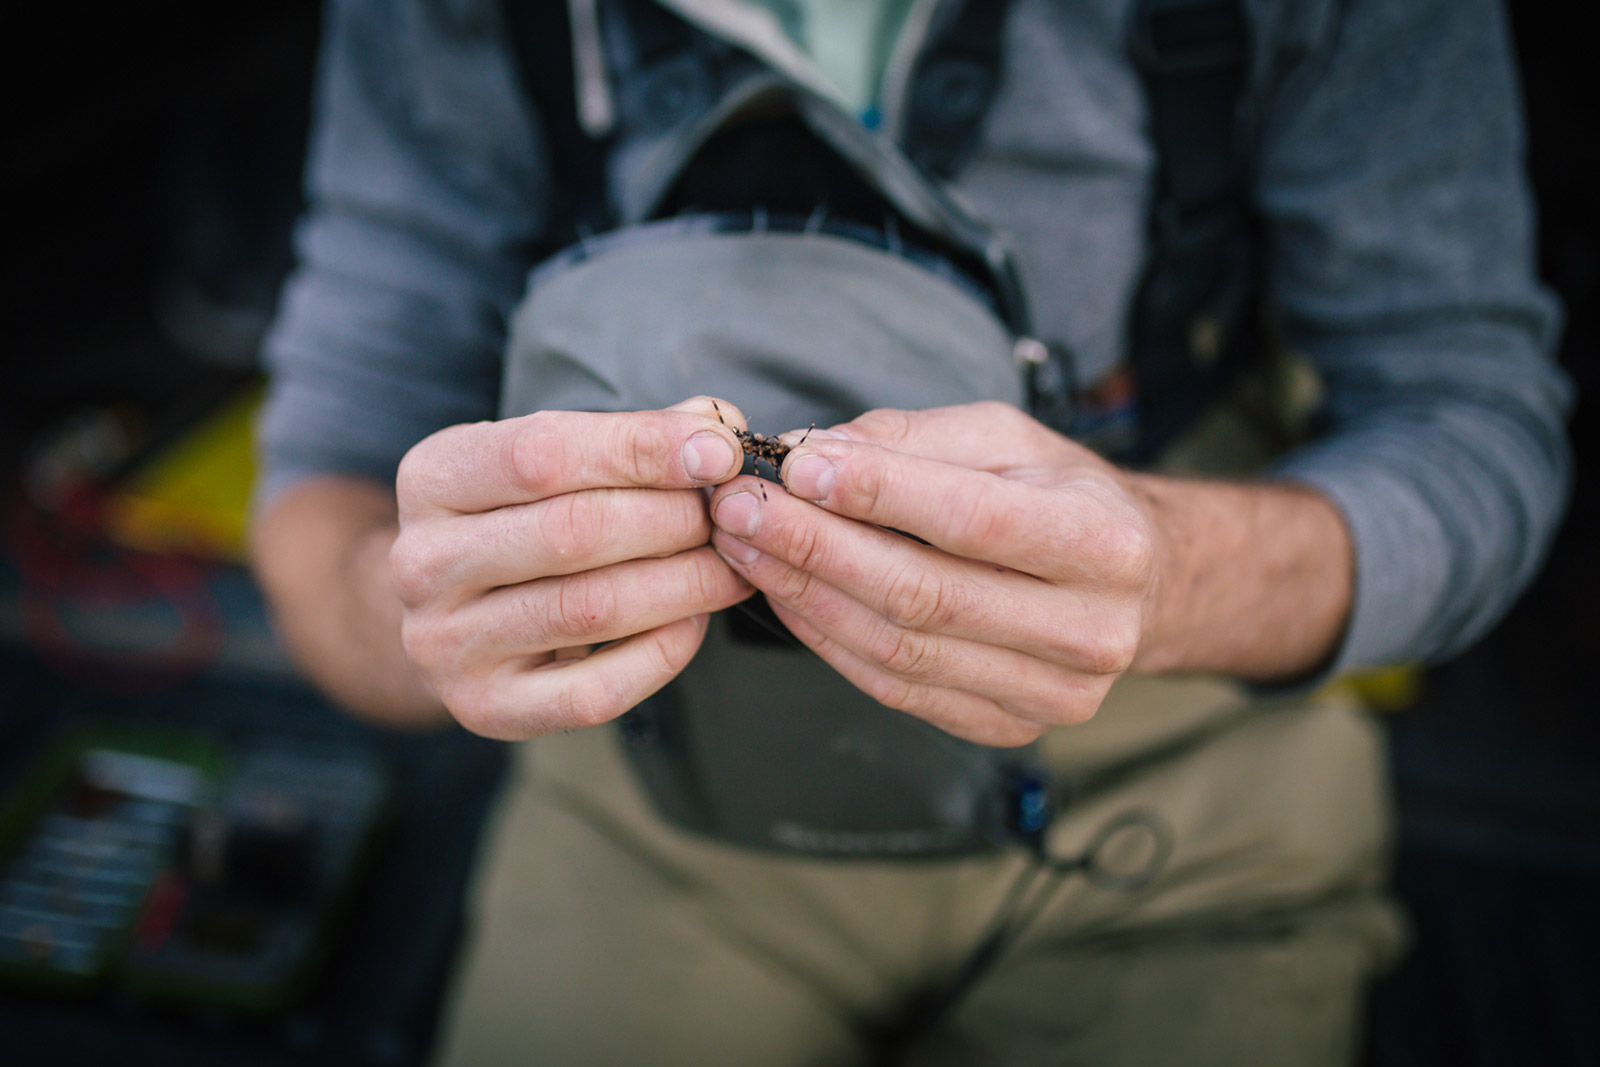 Patrick Burr ties a fishing fly in this Montana photography session.